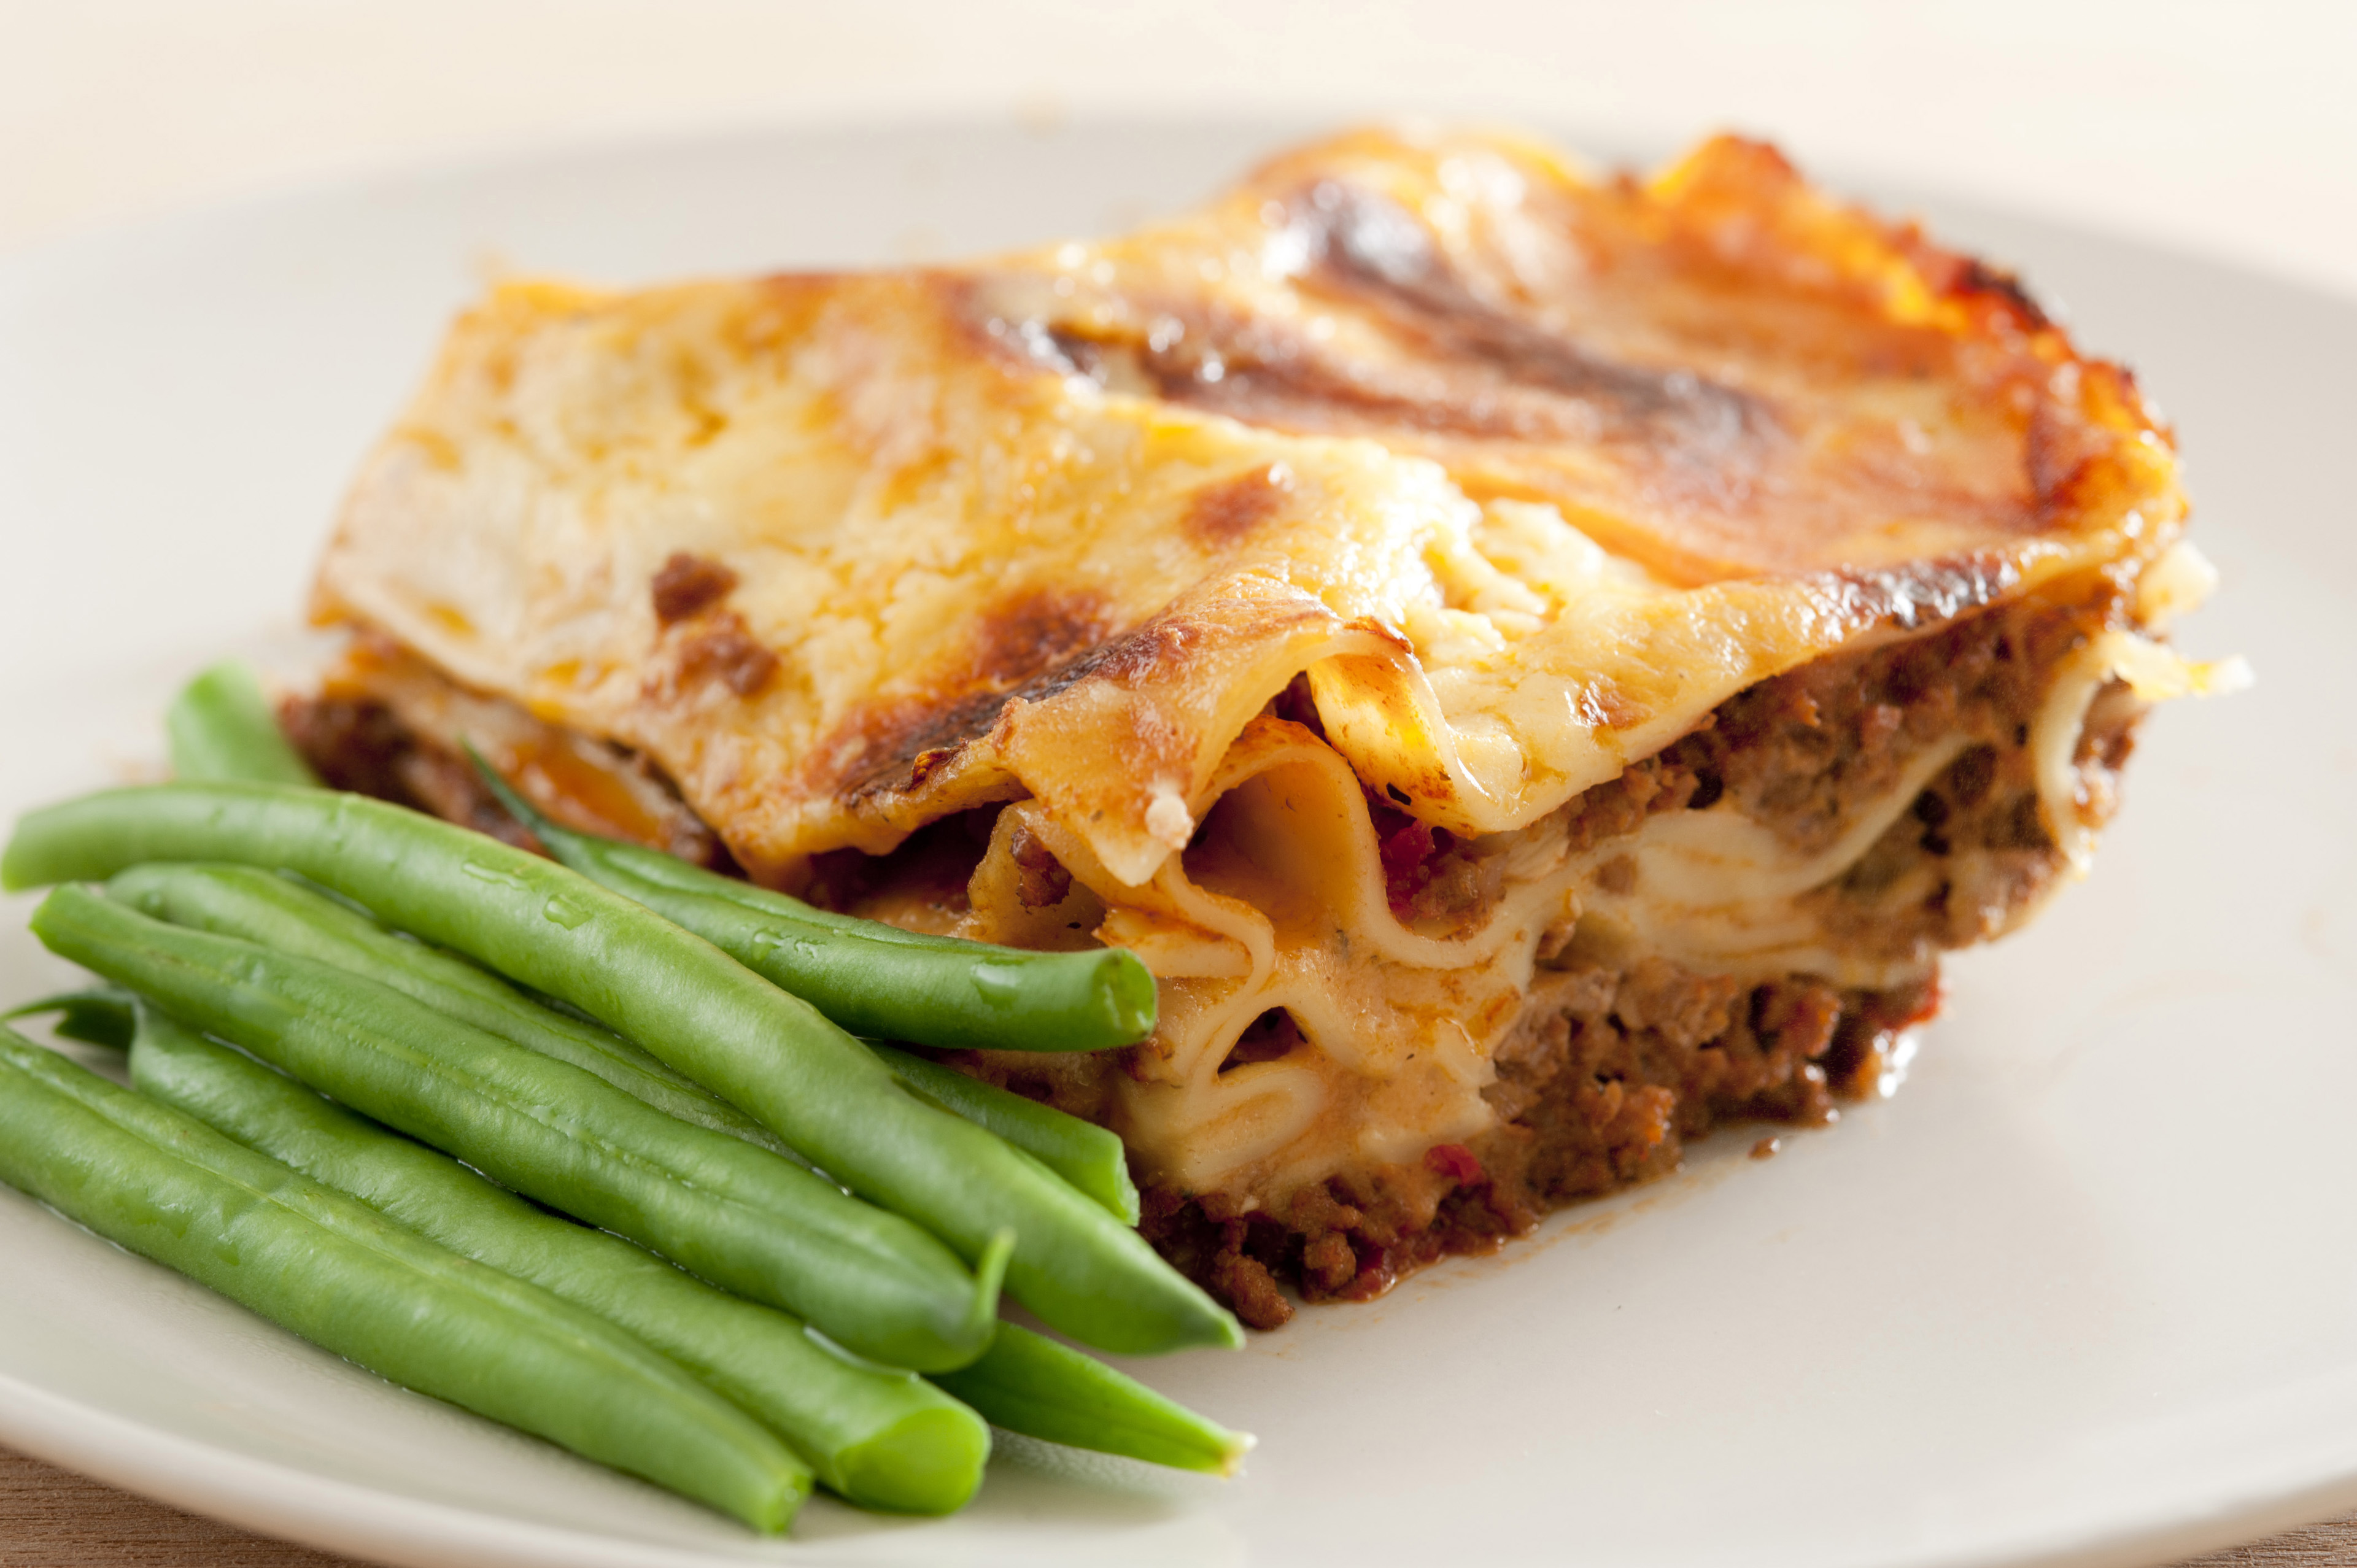 Serving of succulent meaty Italian lasagne pasta with green fresh beans, closeup view